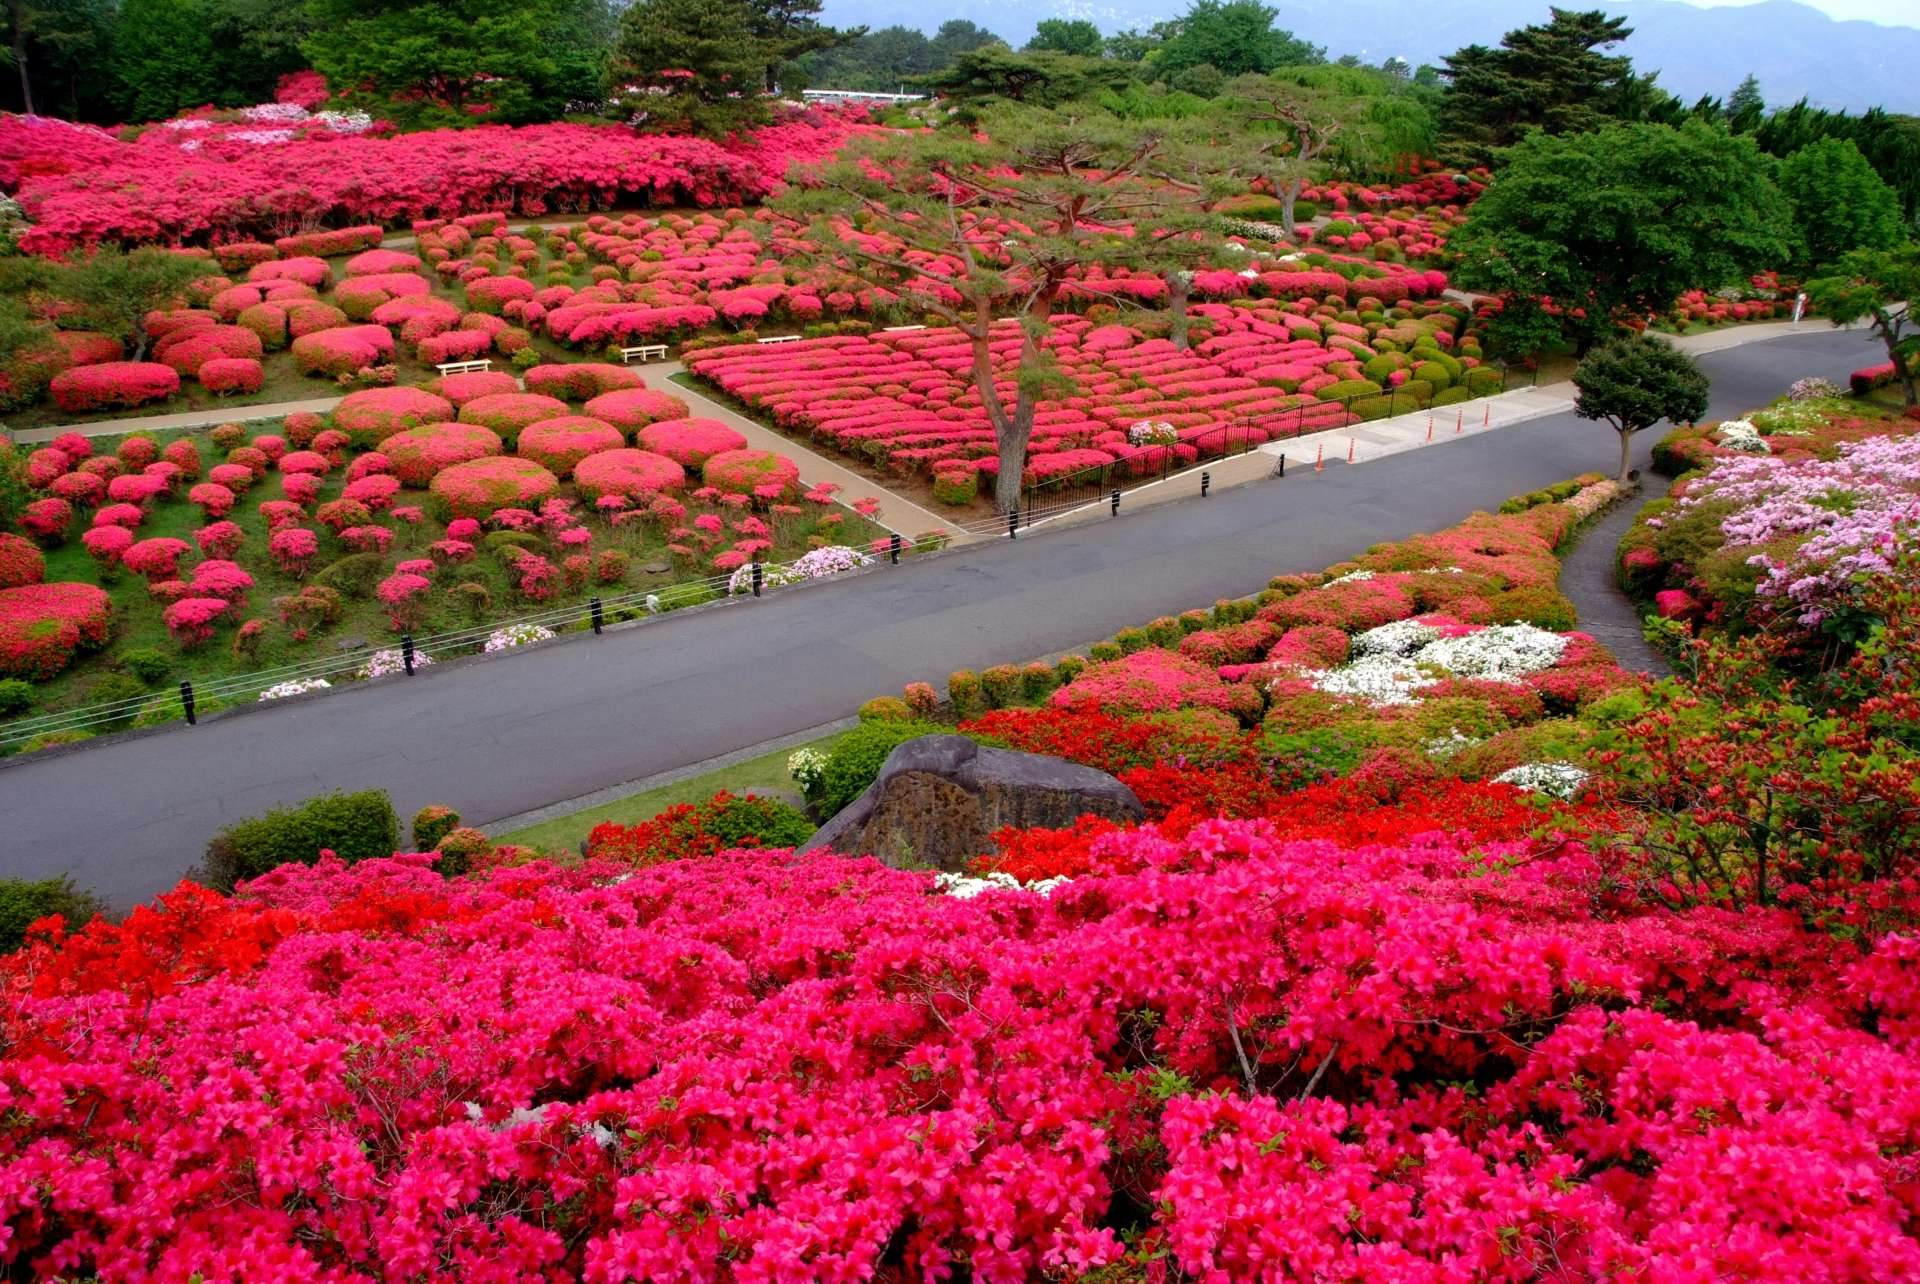 The azaleas spread out like a gorgeous carpet of red!